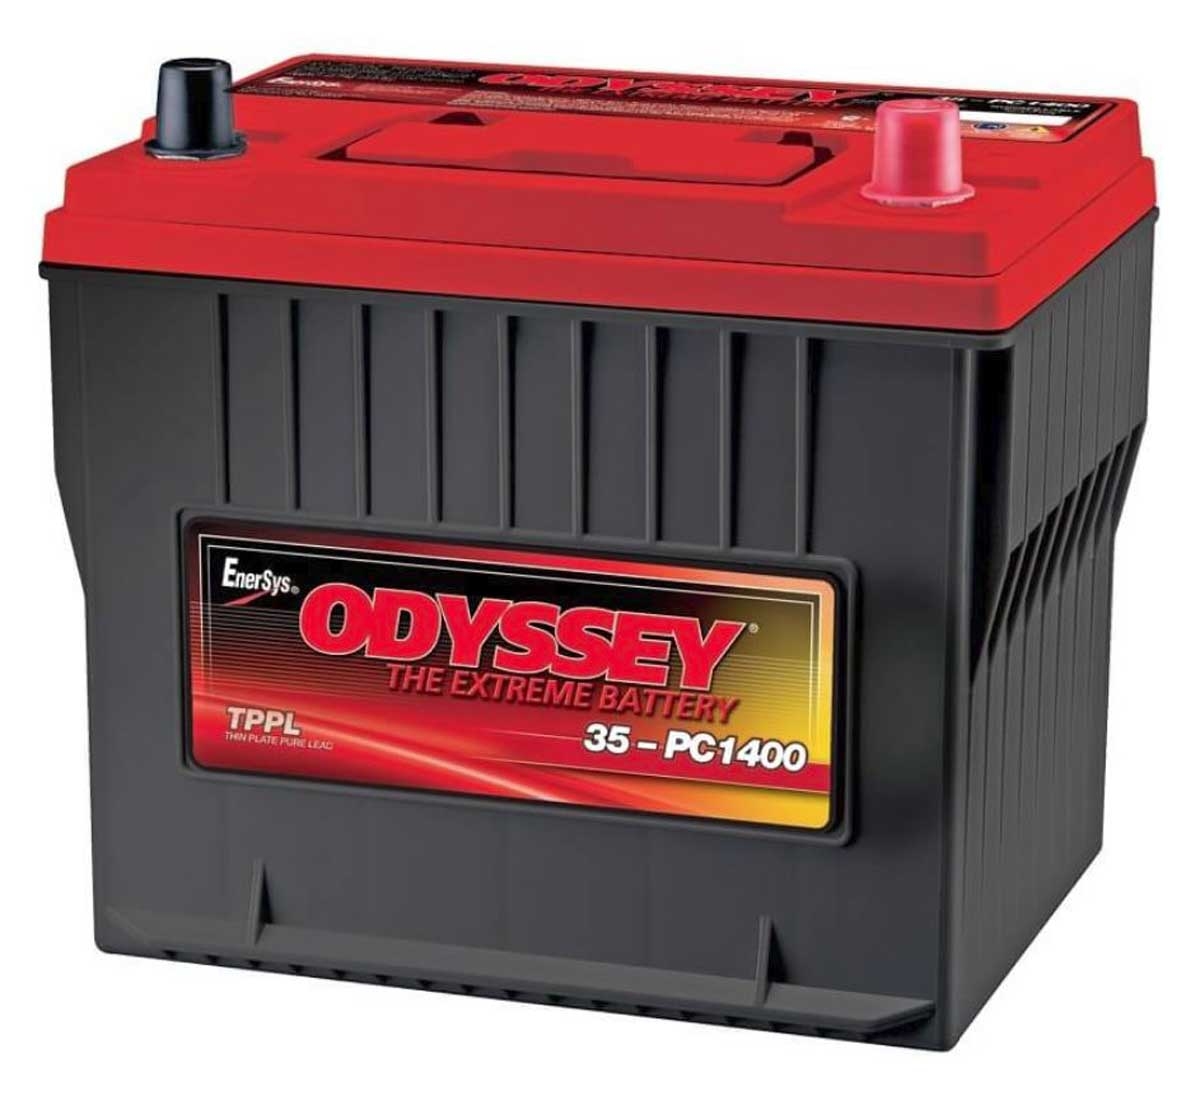 Odyssey PC1400-35 Extreme Battery